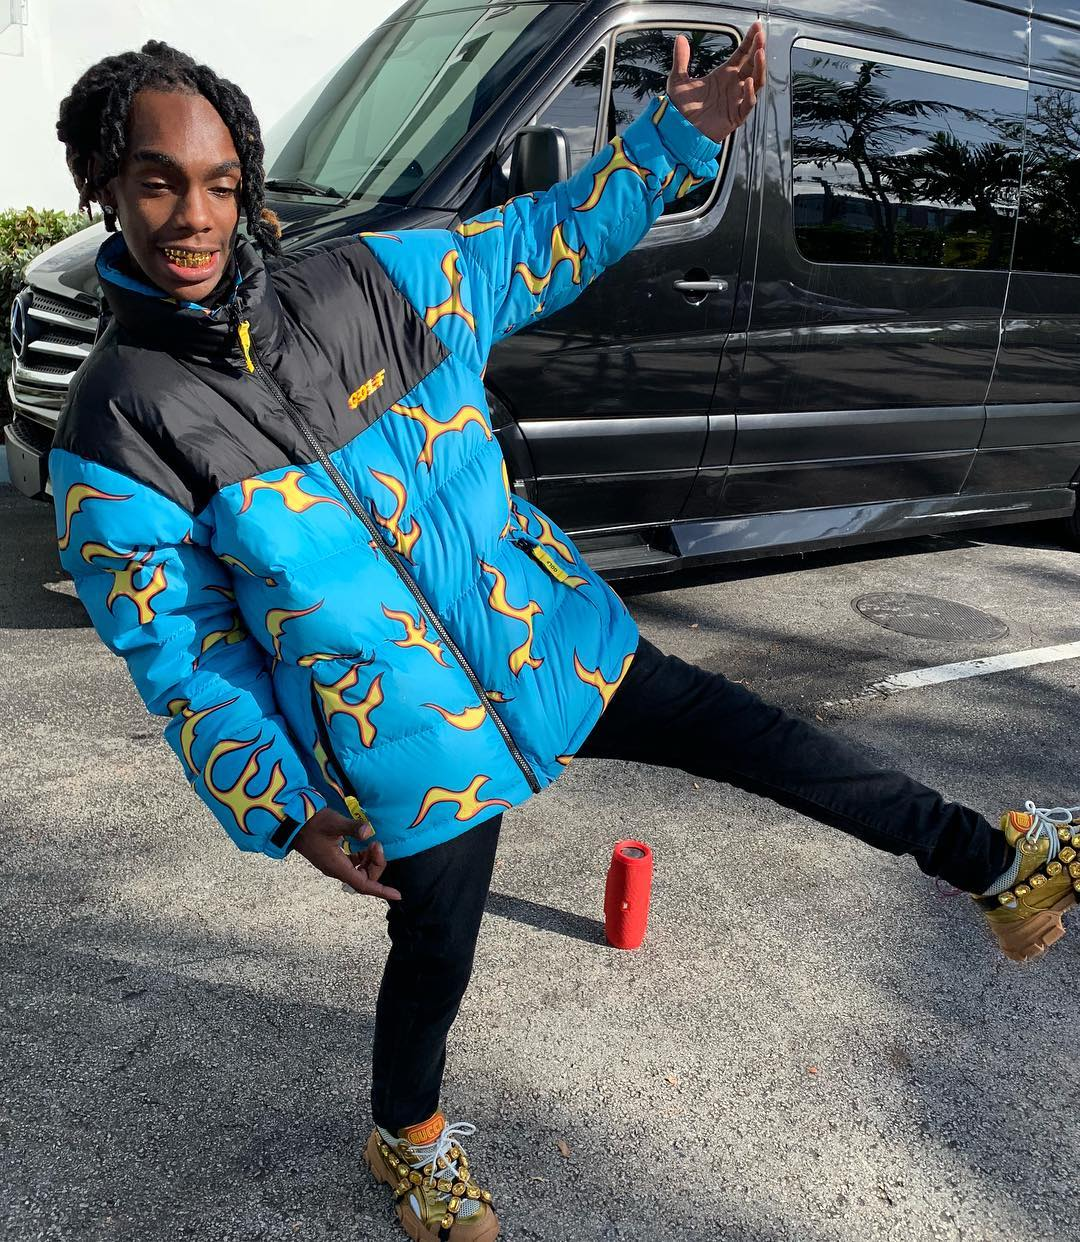 ynw melly - photo #19